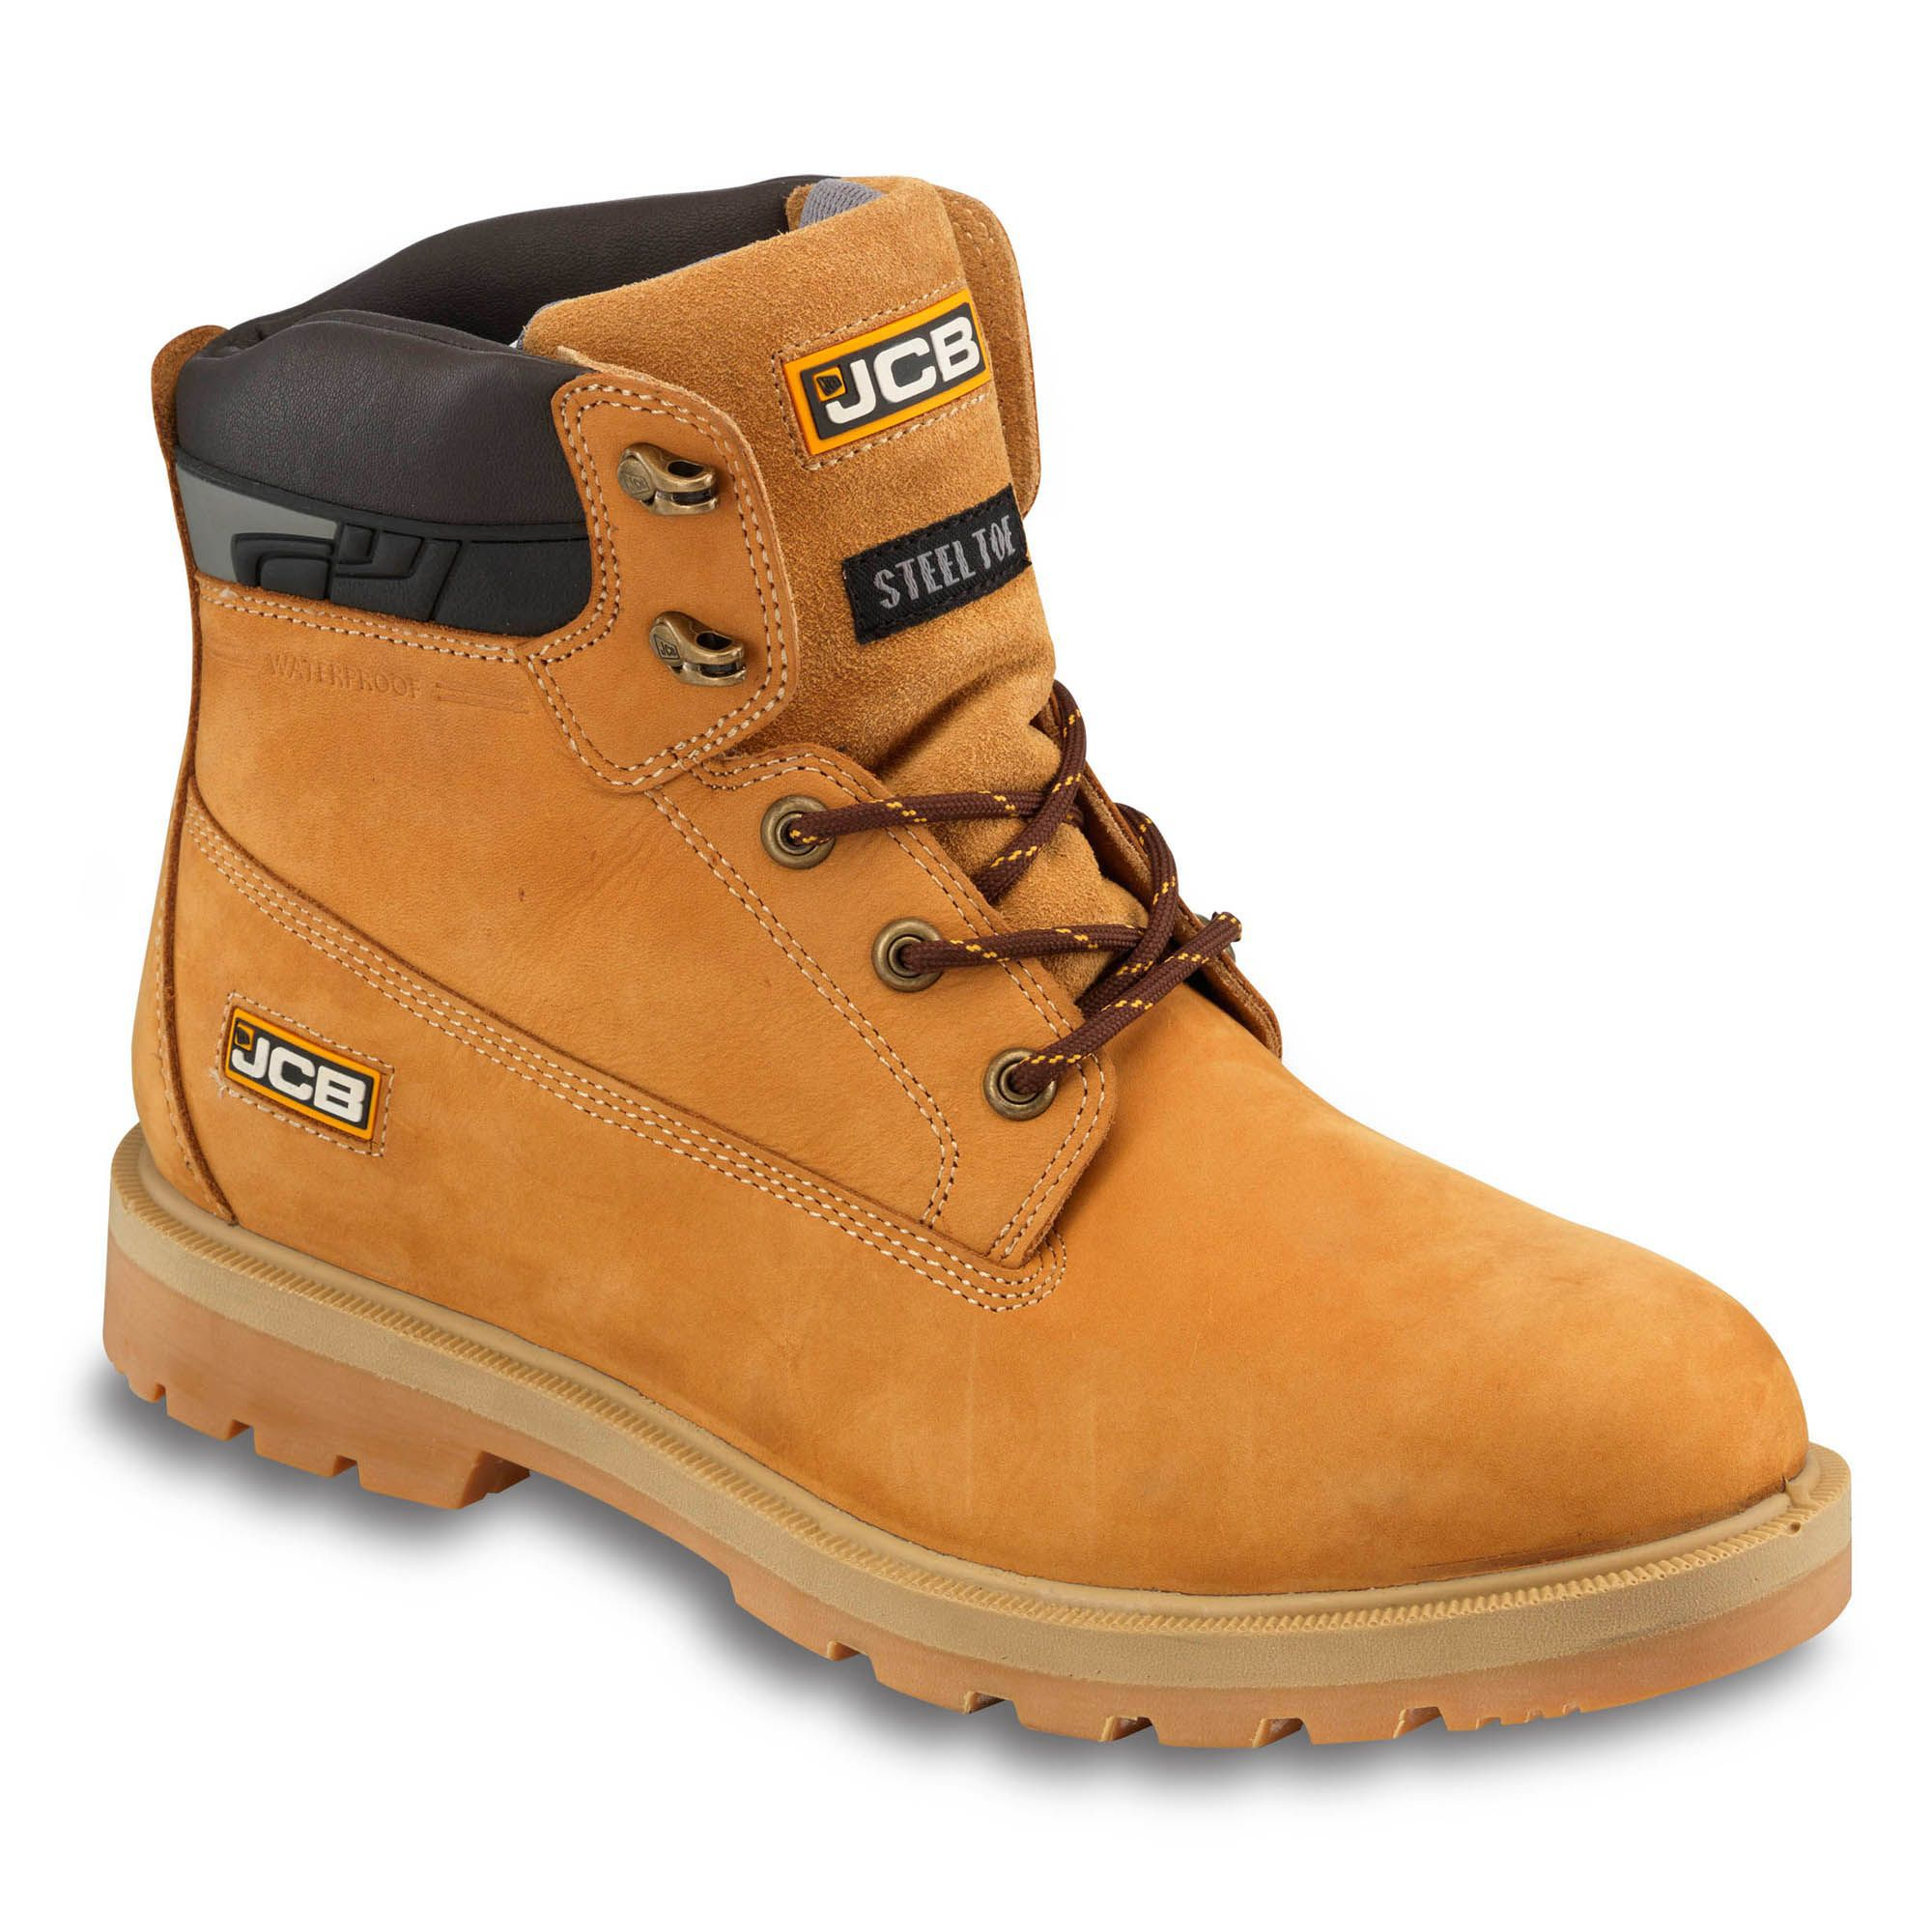 Jcb Honey Protector Safety Boots, Size 7